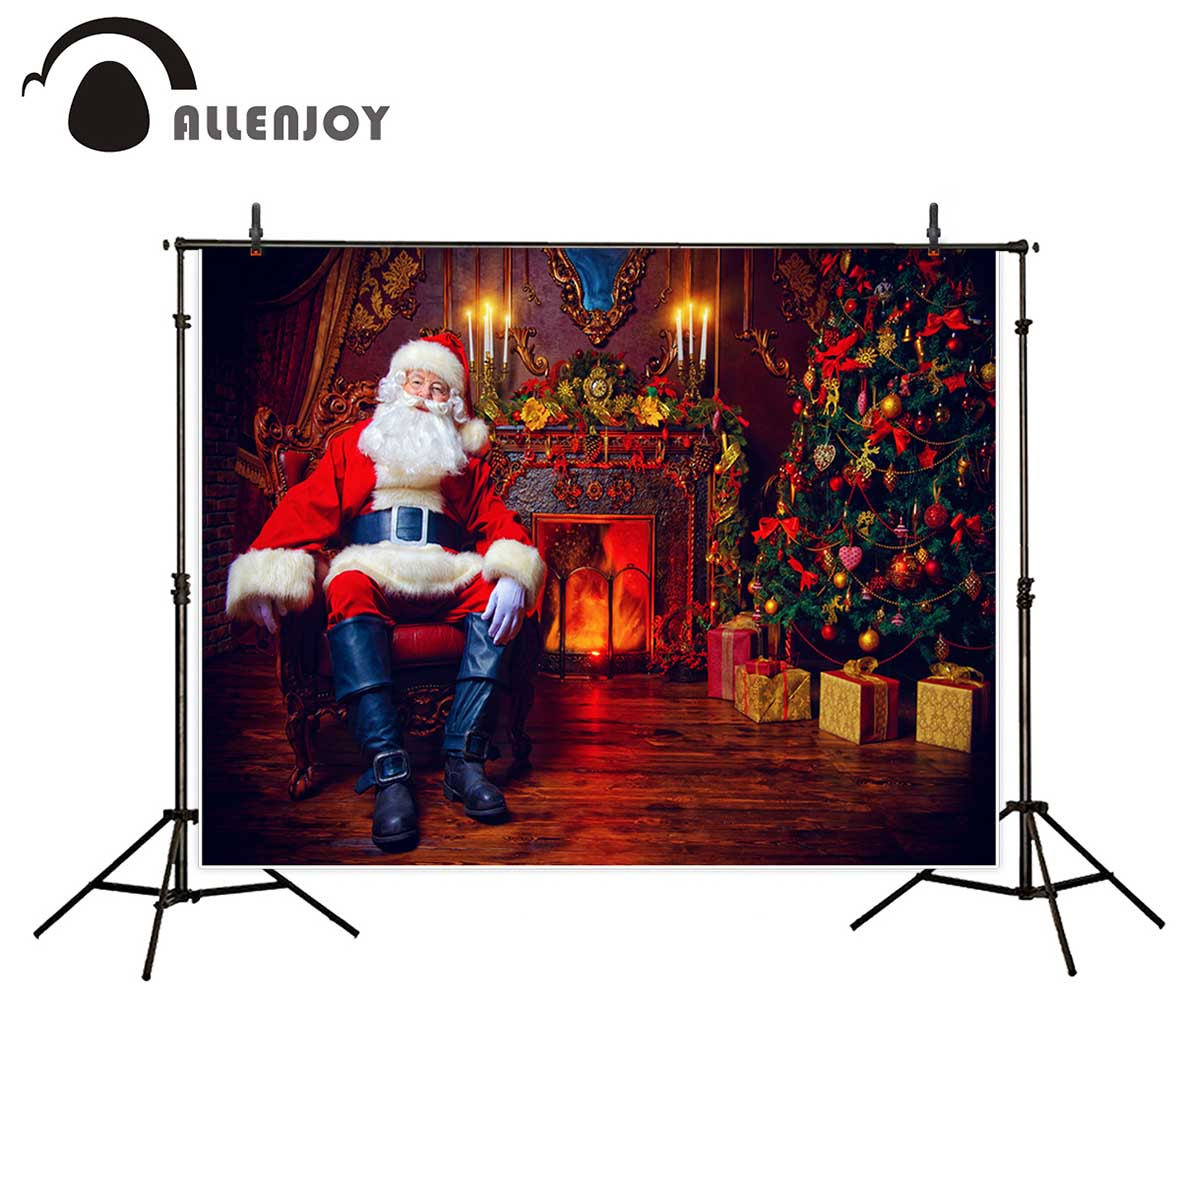 Allenjoy photography background santa claus indoor fireplace christmas tree resting armchair backdrop Photo background studio allenjoy photography background baby shower step and repeat backdrop custom made any style wedding birthday photo booth backdrop